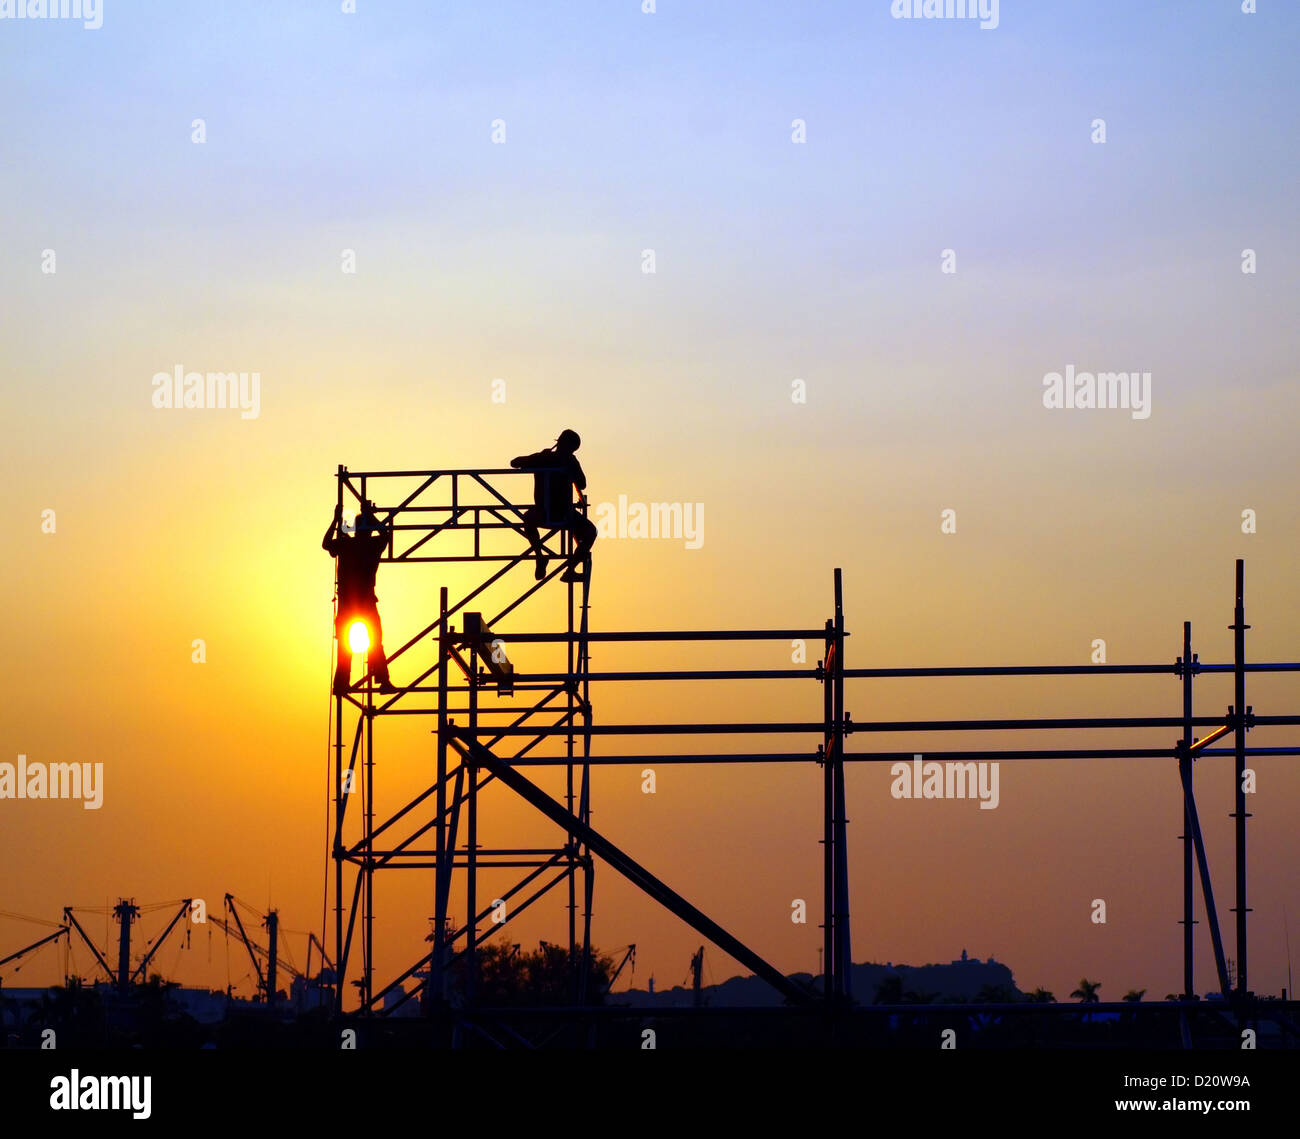 Construction workers high up on a scaffold seen against the setting sun - Stock Image